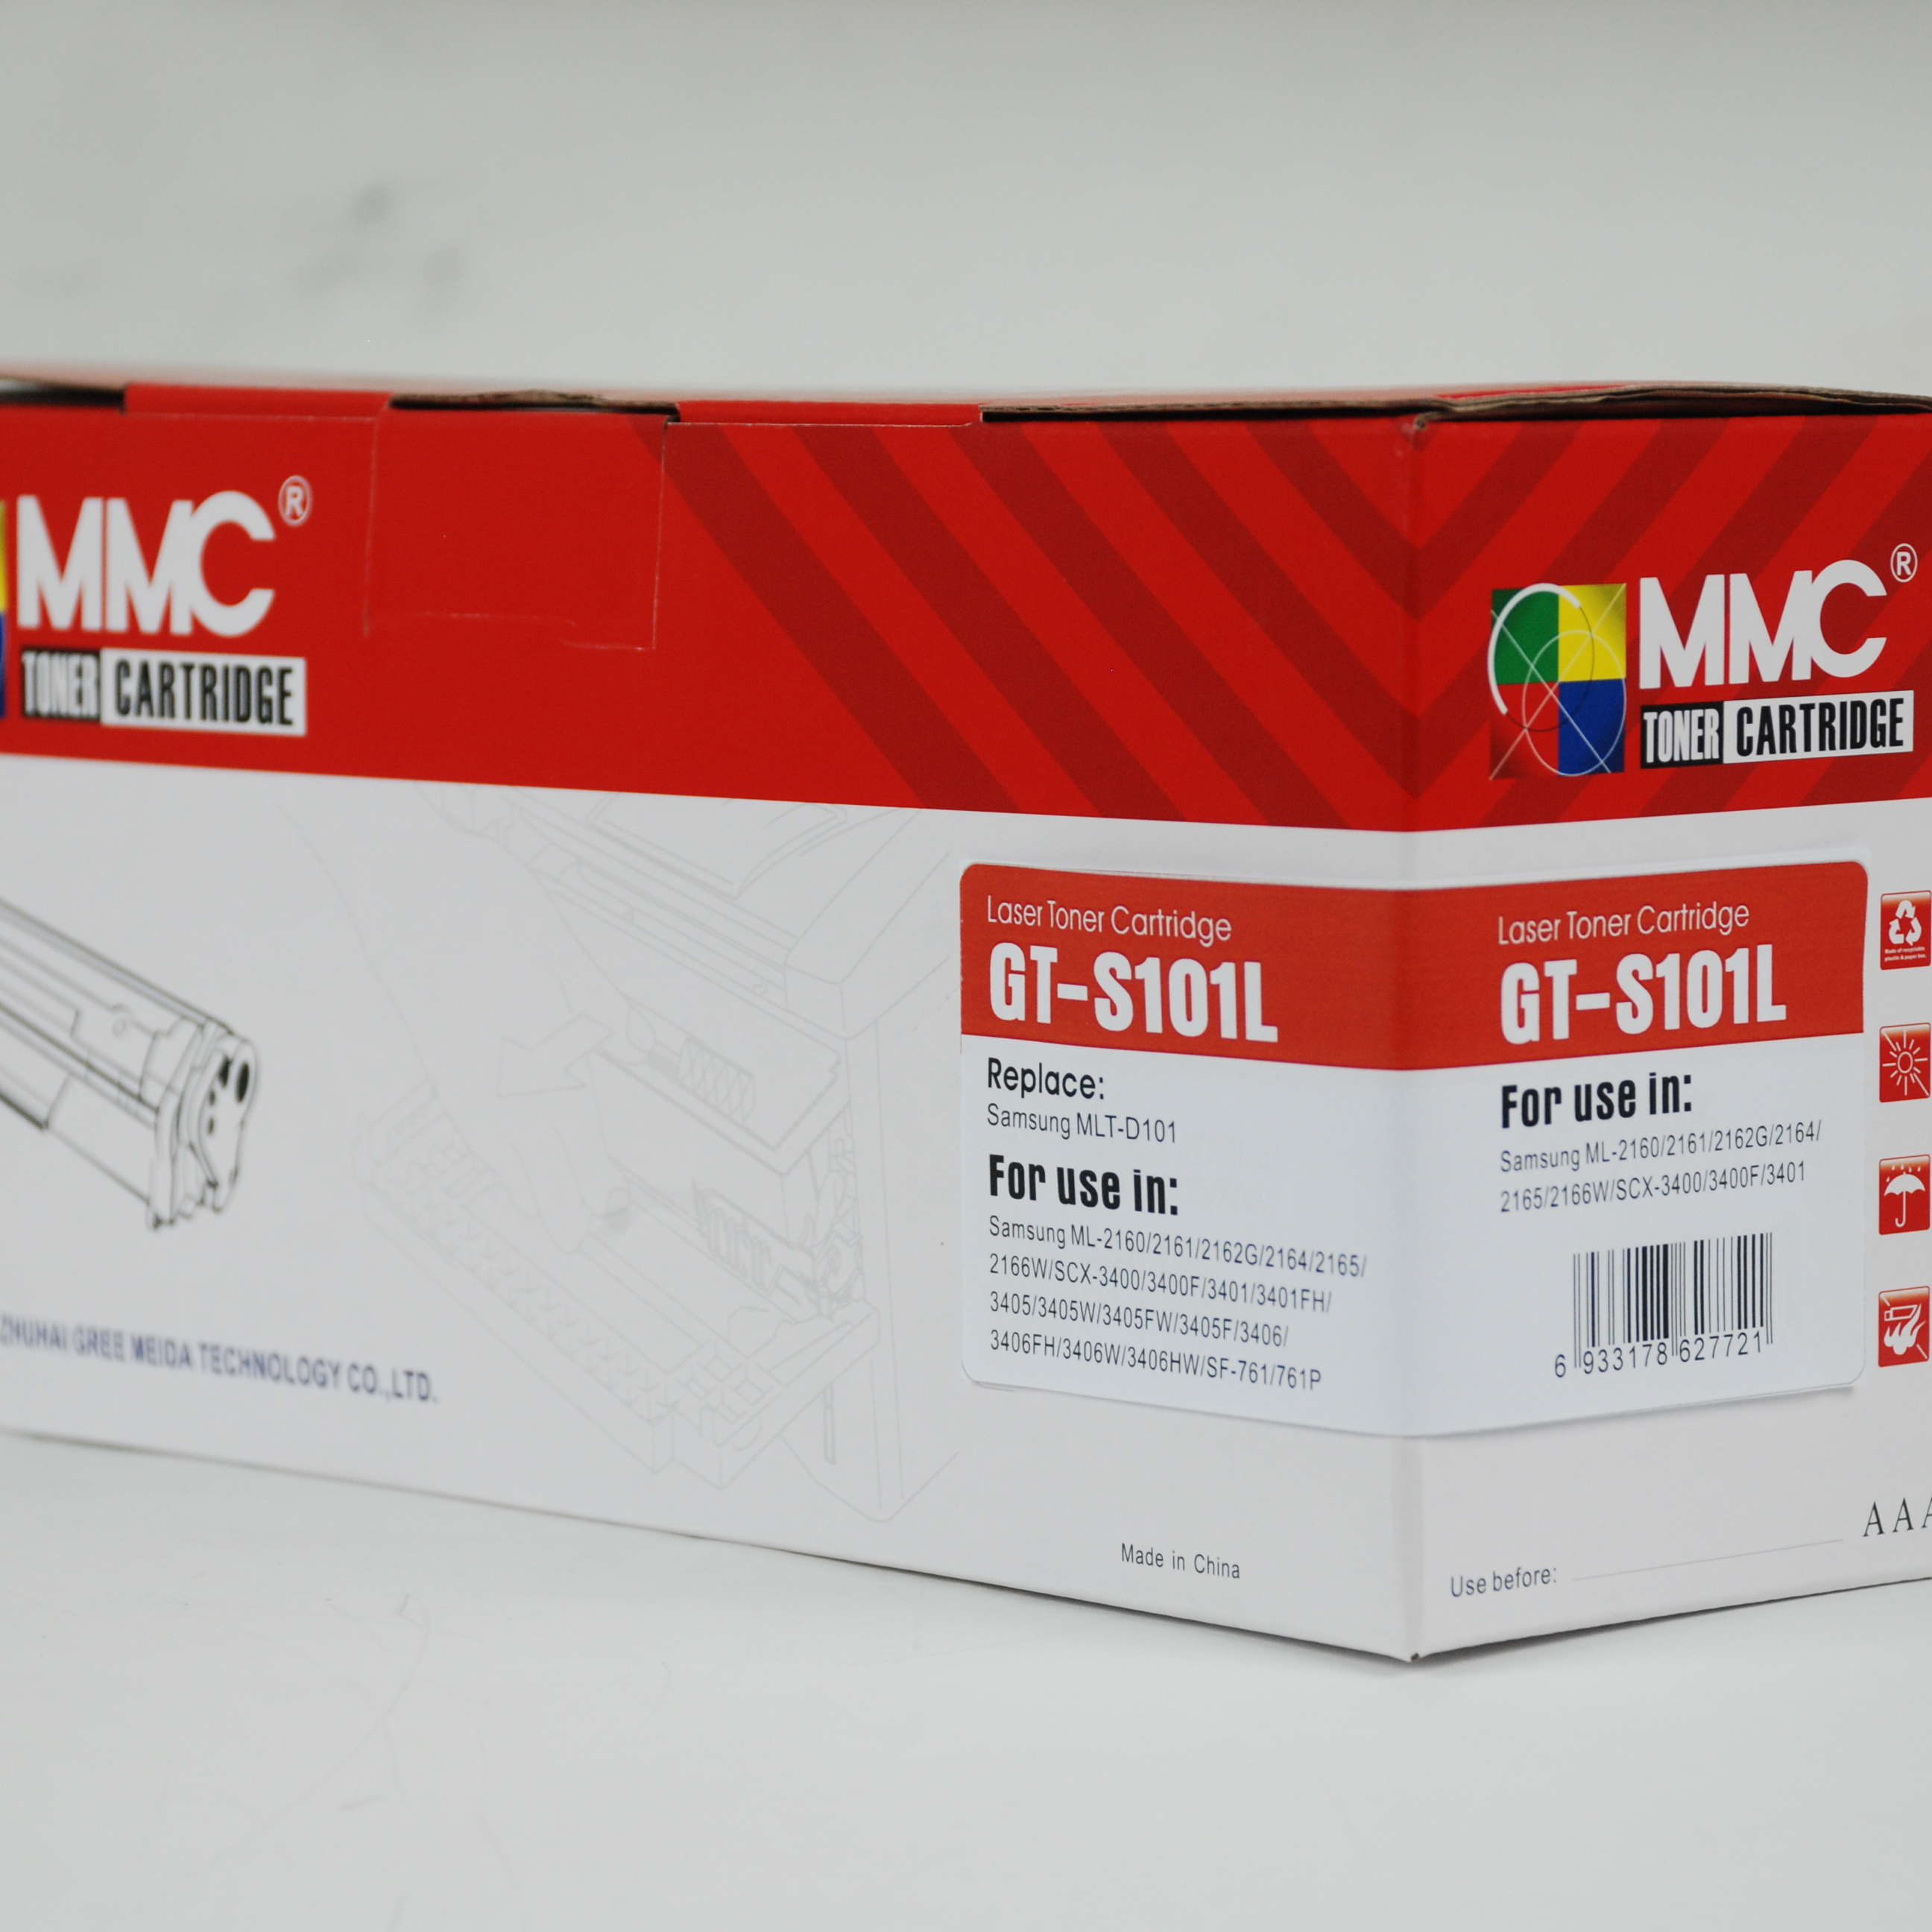 MMC Toner Cartridge for Samsung 101S <strong>D101S</strong> MLT-<strong>D101S</strong> 101 use in ML-2165W/SF-760P/SCX-3405FW